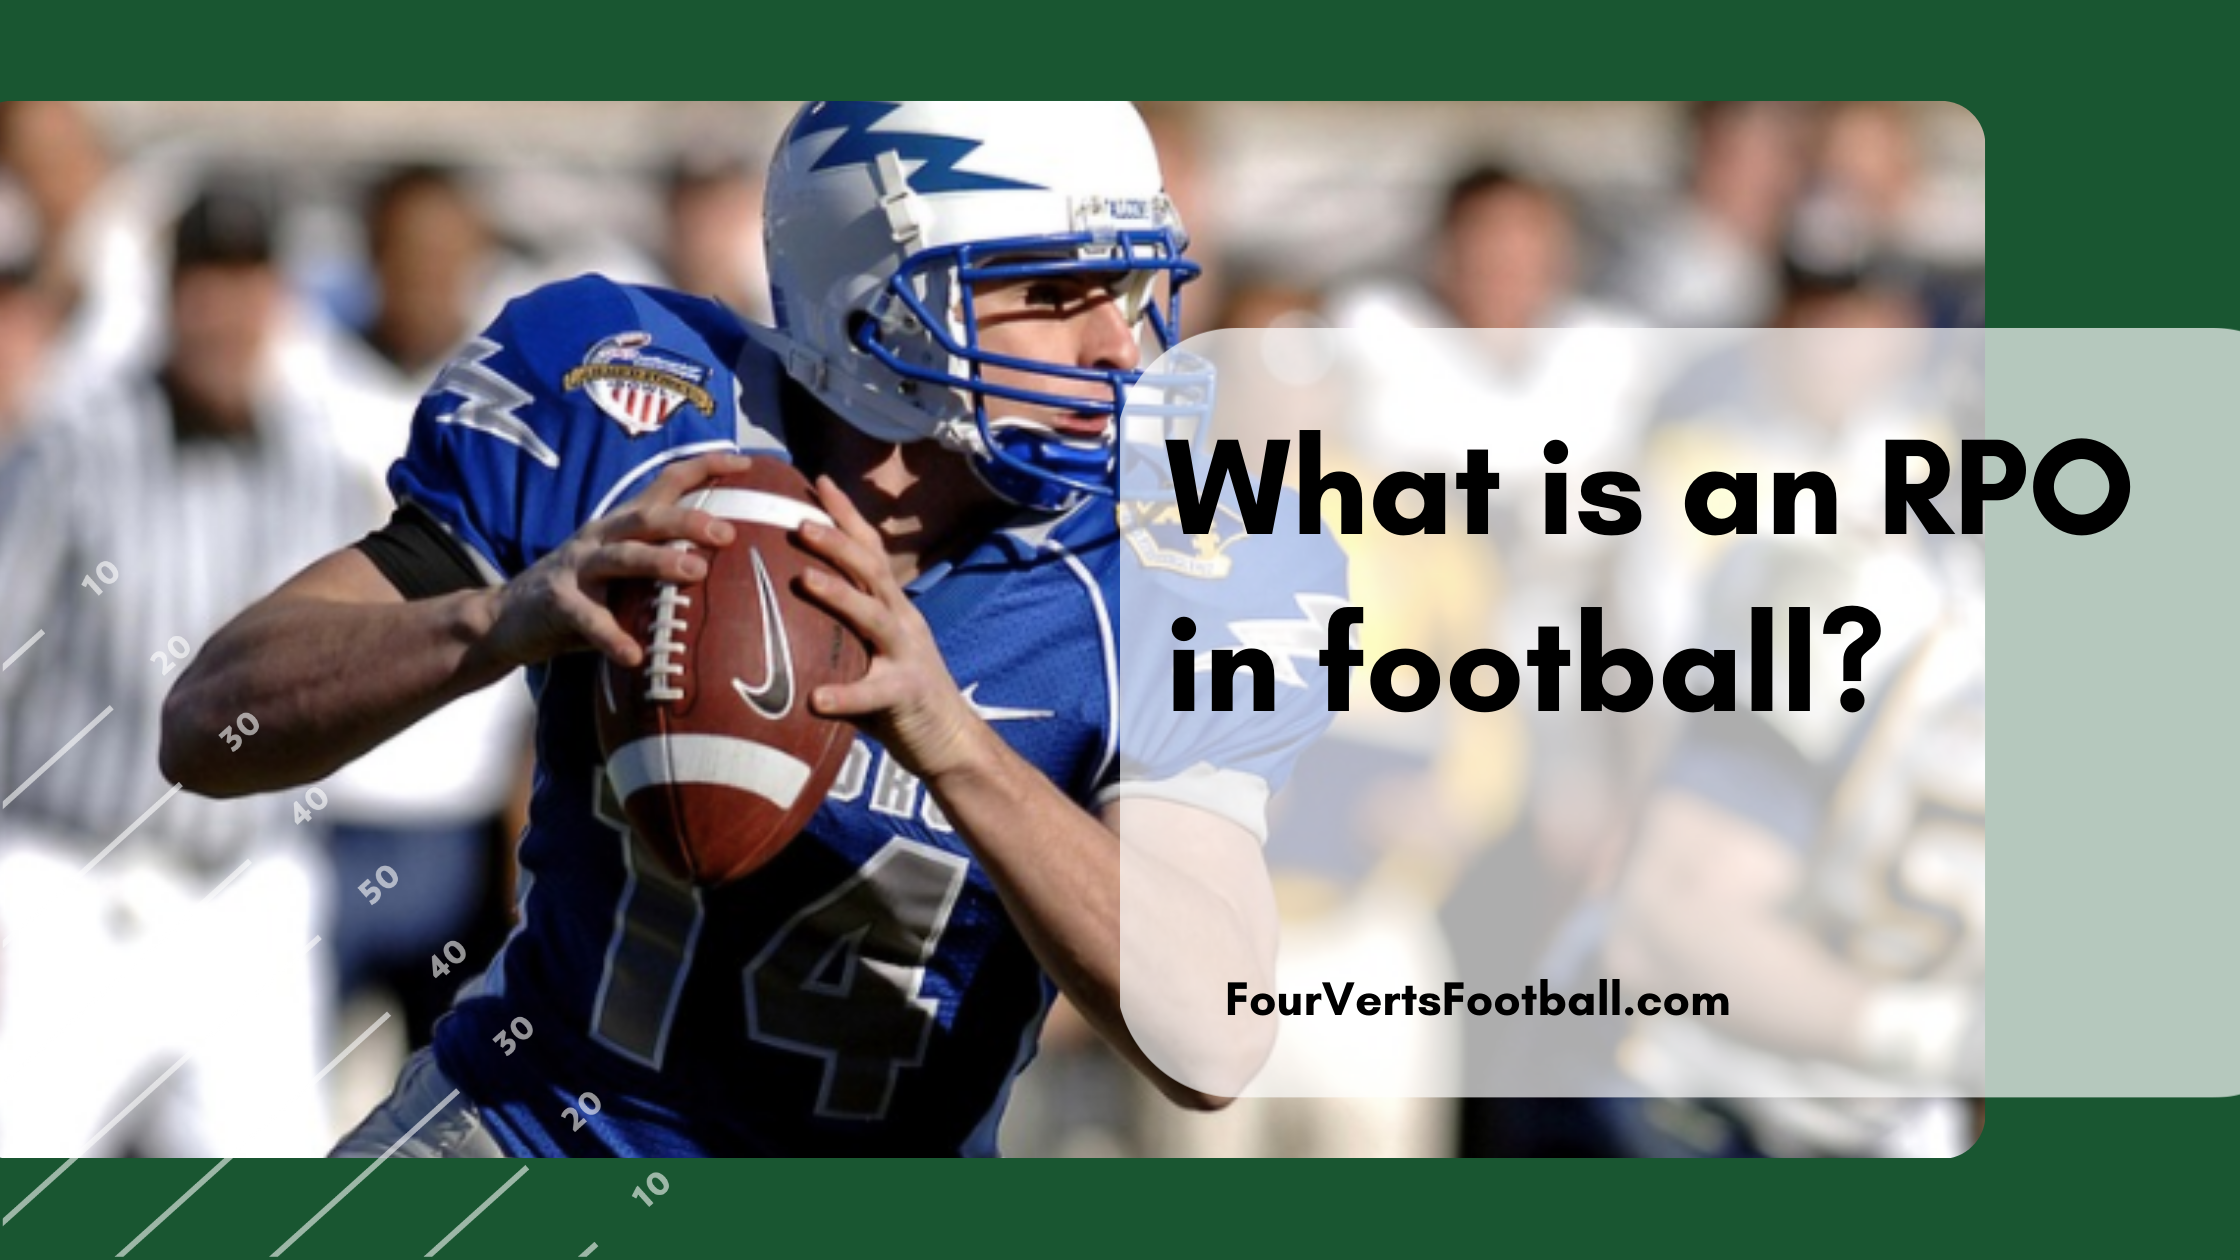 what is an RPO